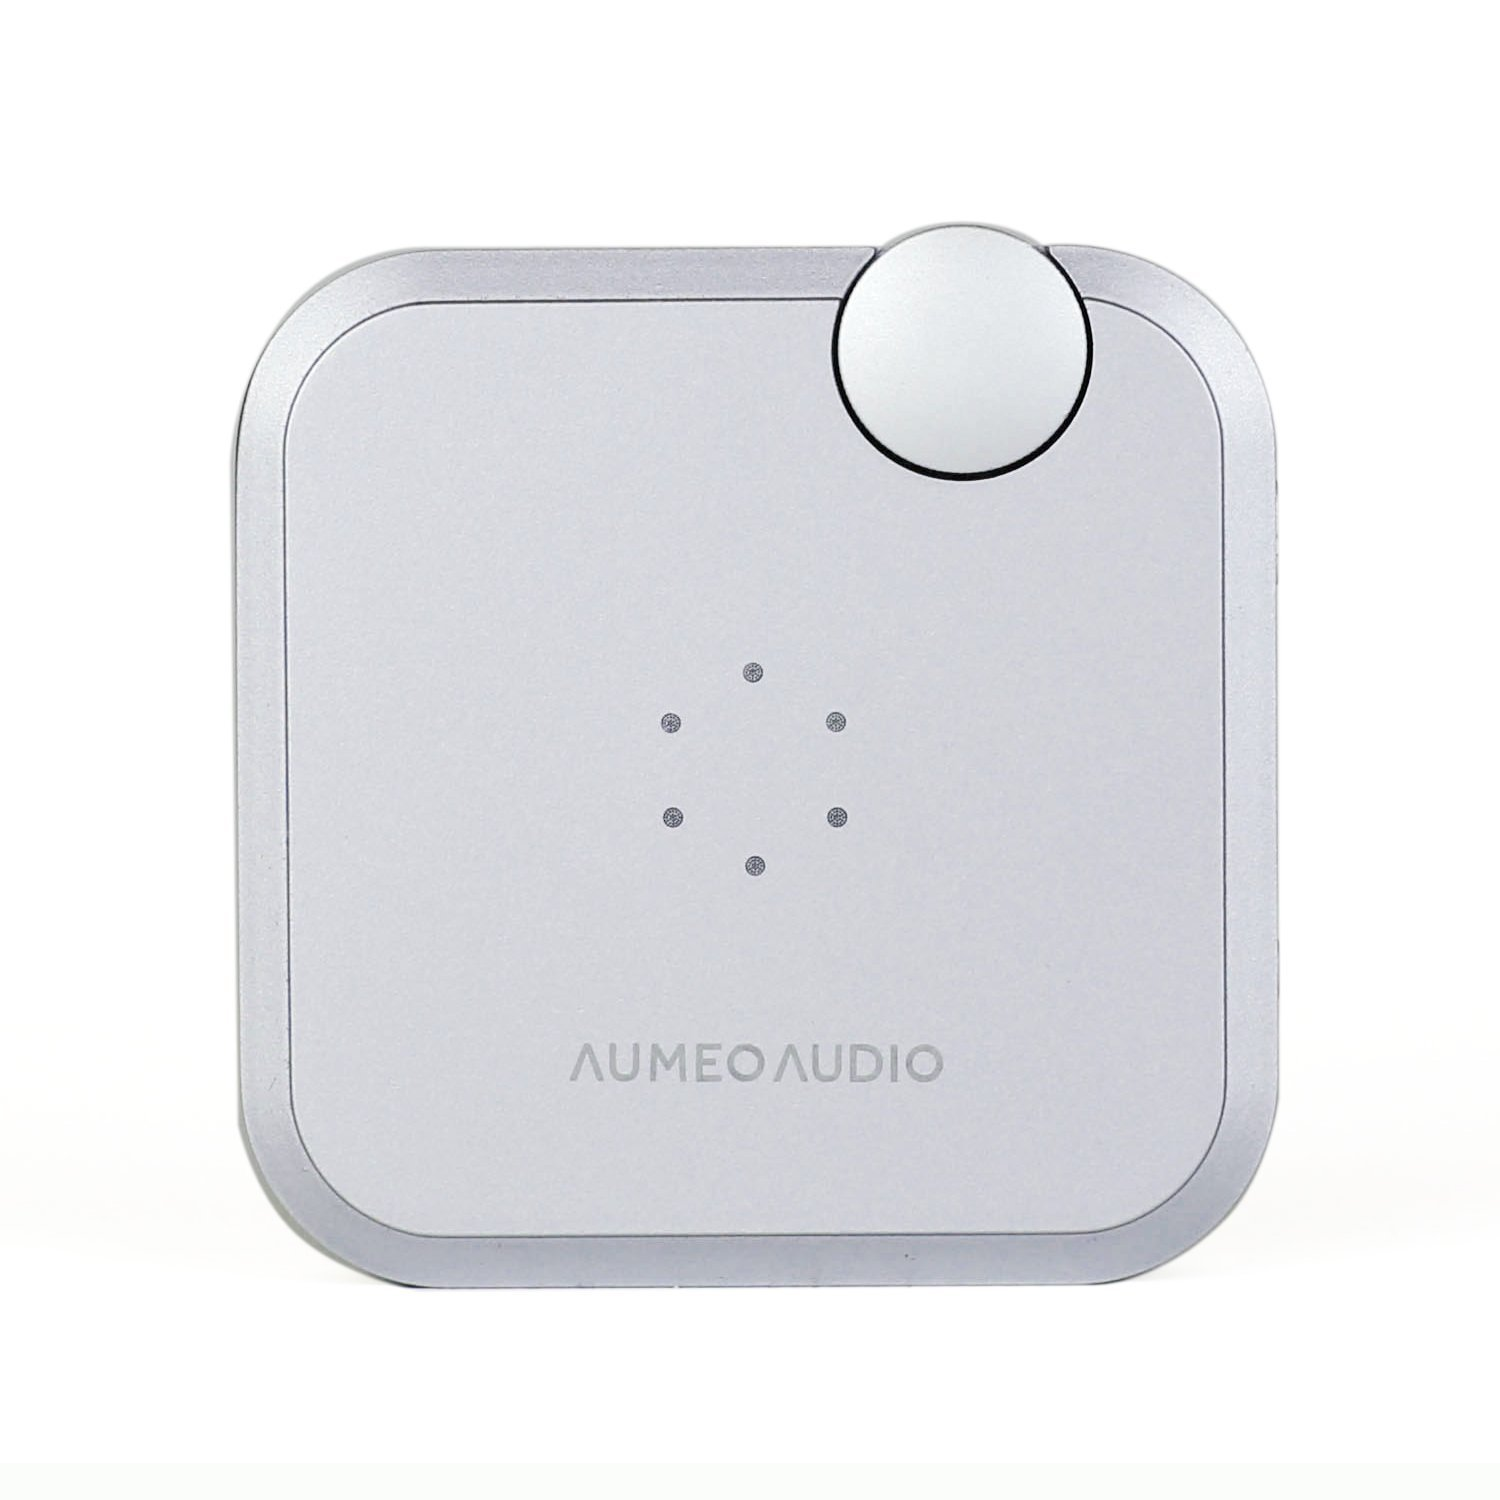 Aumeo Audio Tailored Audio Device and Headphone Personalizer, Bluetooth / 3.5mm Audio Dongle for iPhone, Android and More - Silver